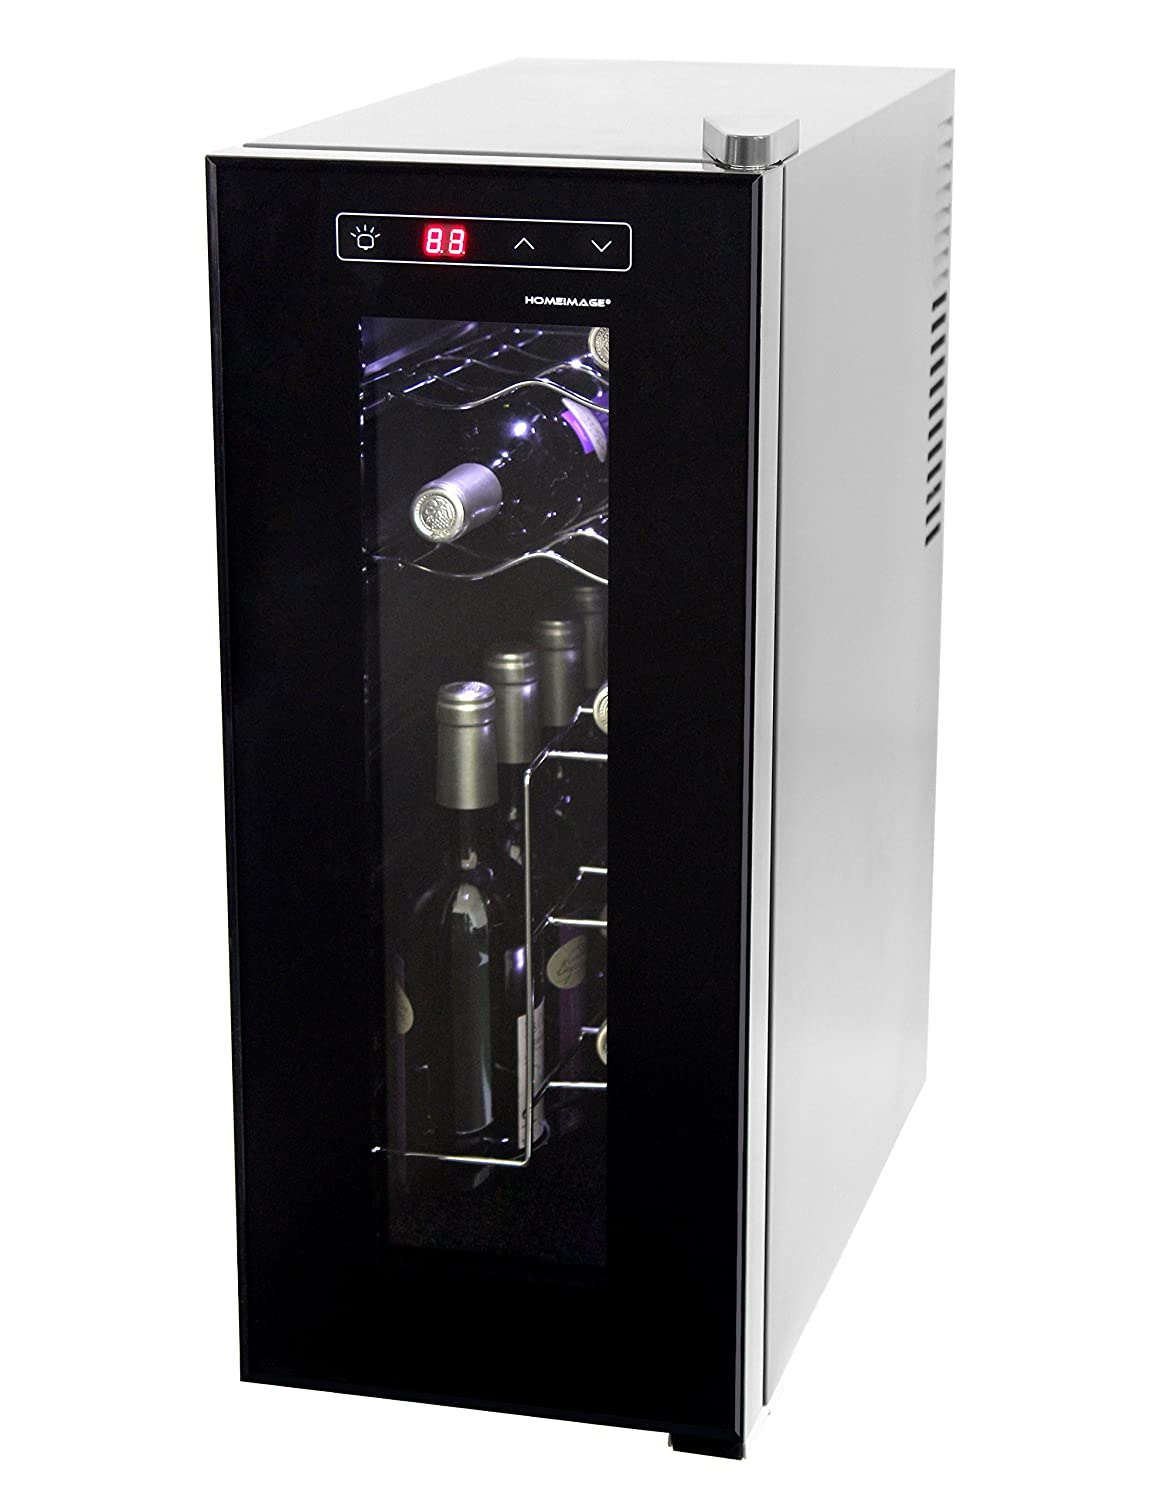 HOMEIMAGE Thermo Electric Wine Cooler for 12 Bottles with Vertical Rack - HI-12C